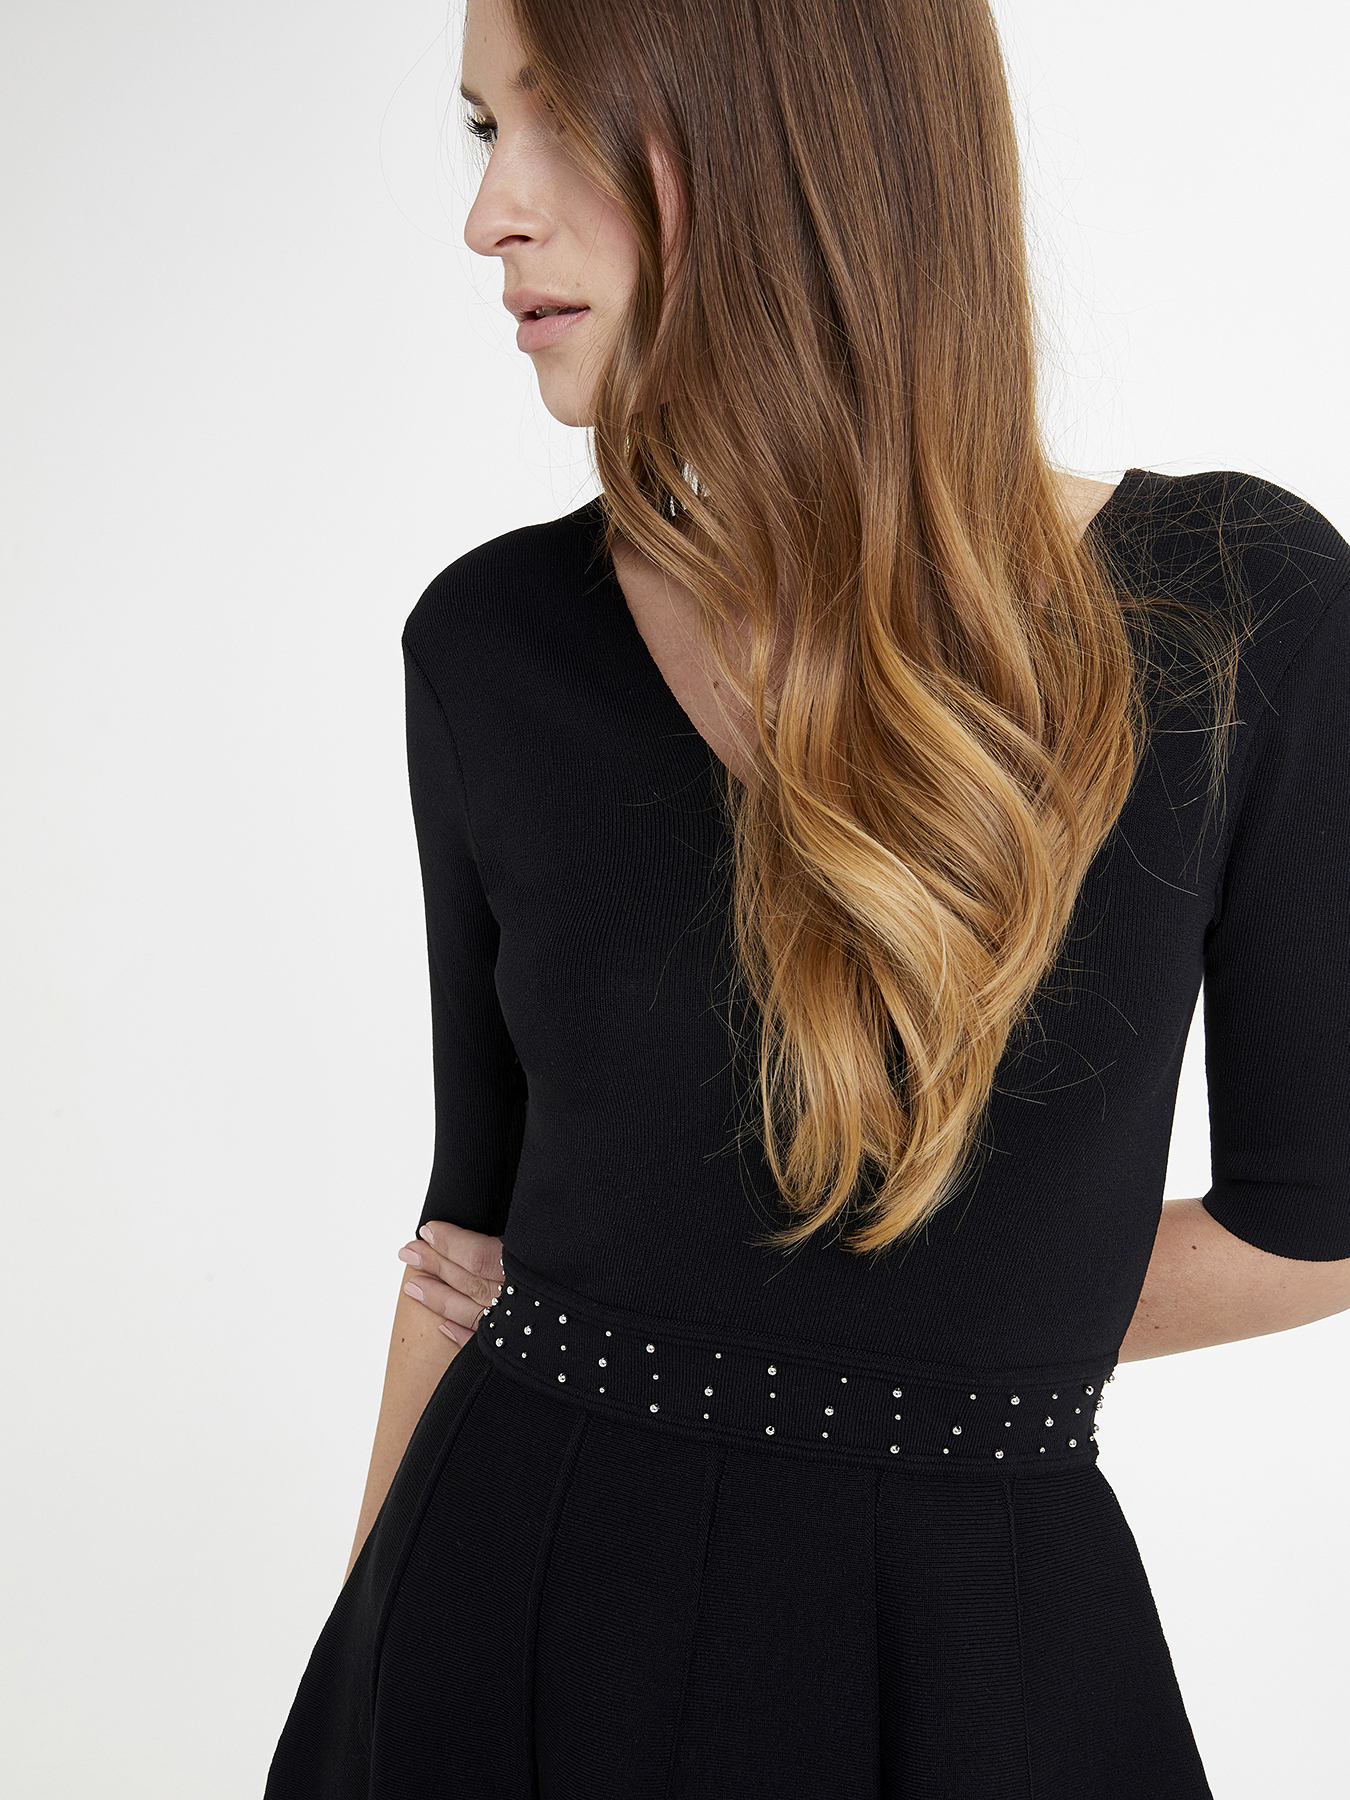 Tricot-effect jersey dress with elbow sleeves and worked skirt; V-shaped neckline and flared line; waist with an embroidery of silver metallic pearls.